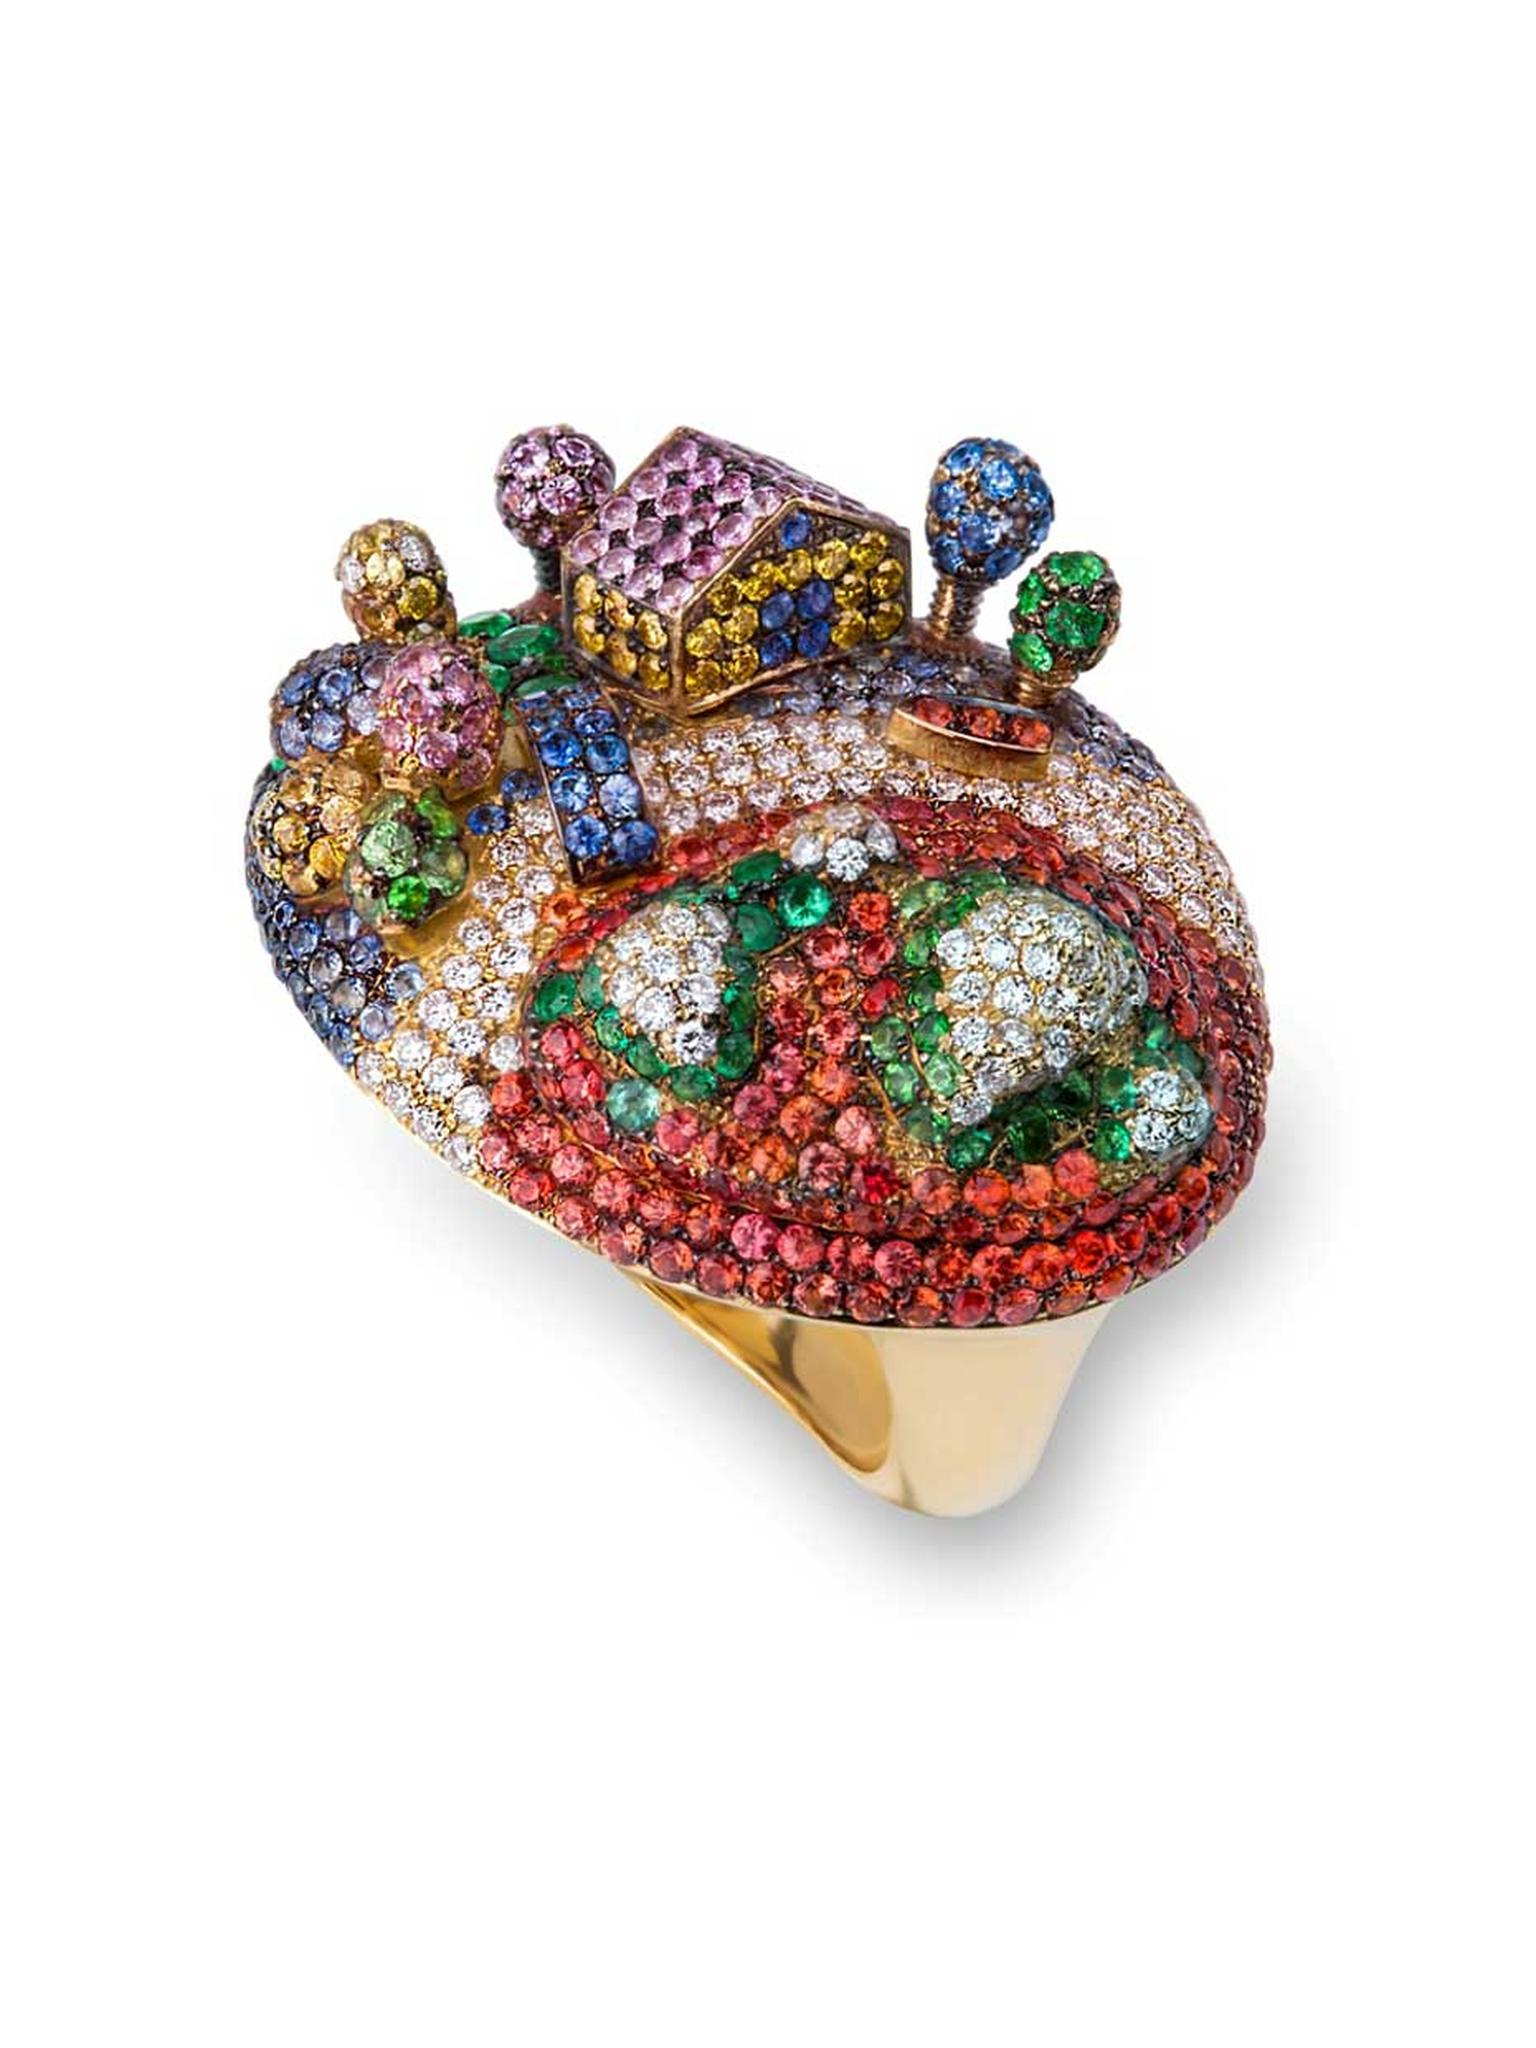 Gold Rosior ring set with white diamonds, yellow diamonds, sapphires, emeralds and tsavorites.